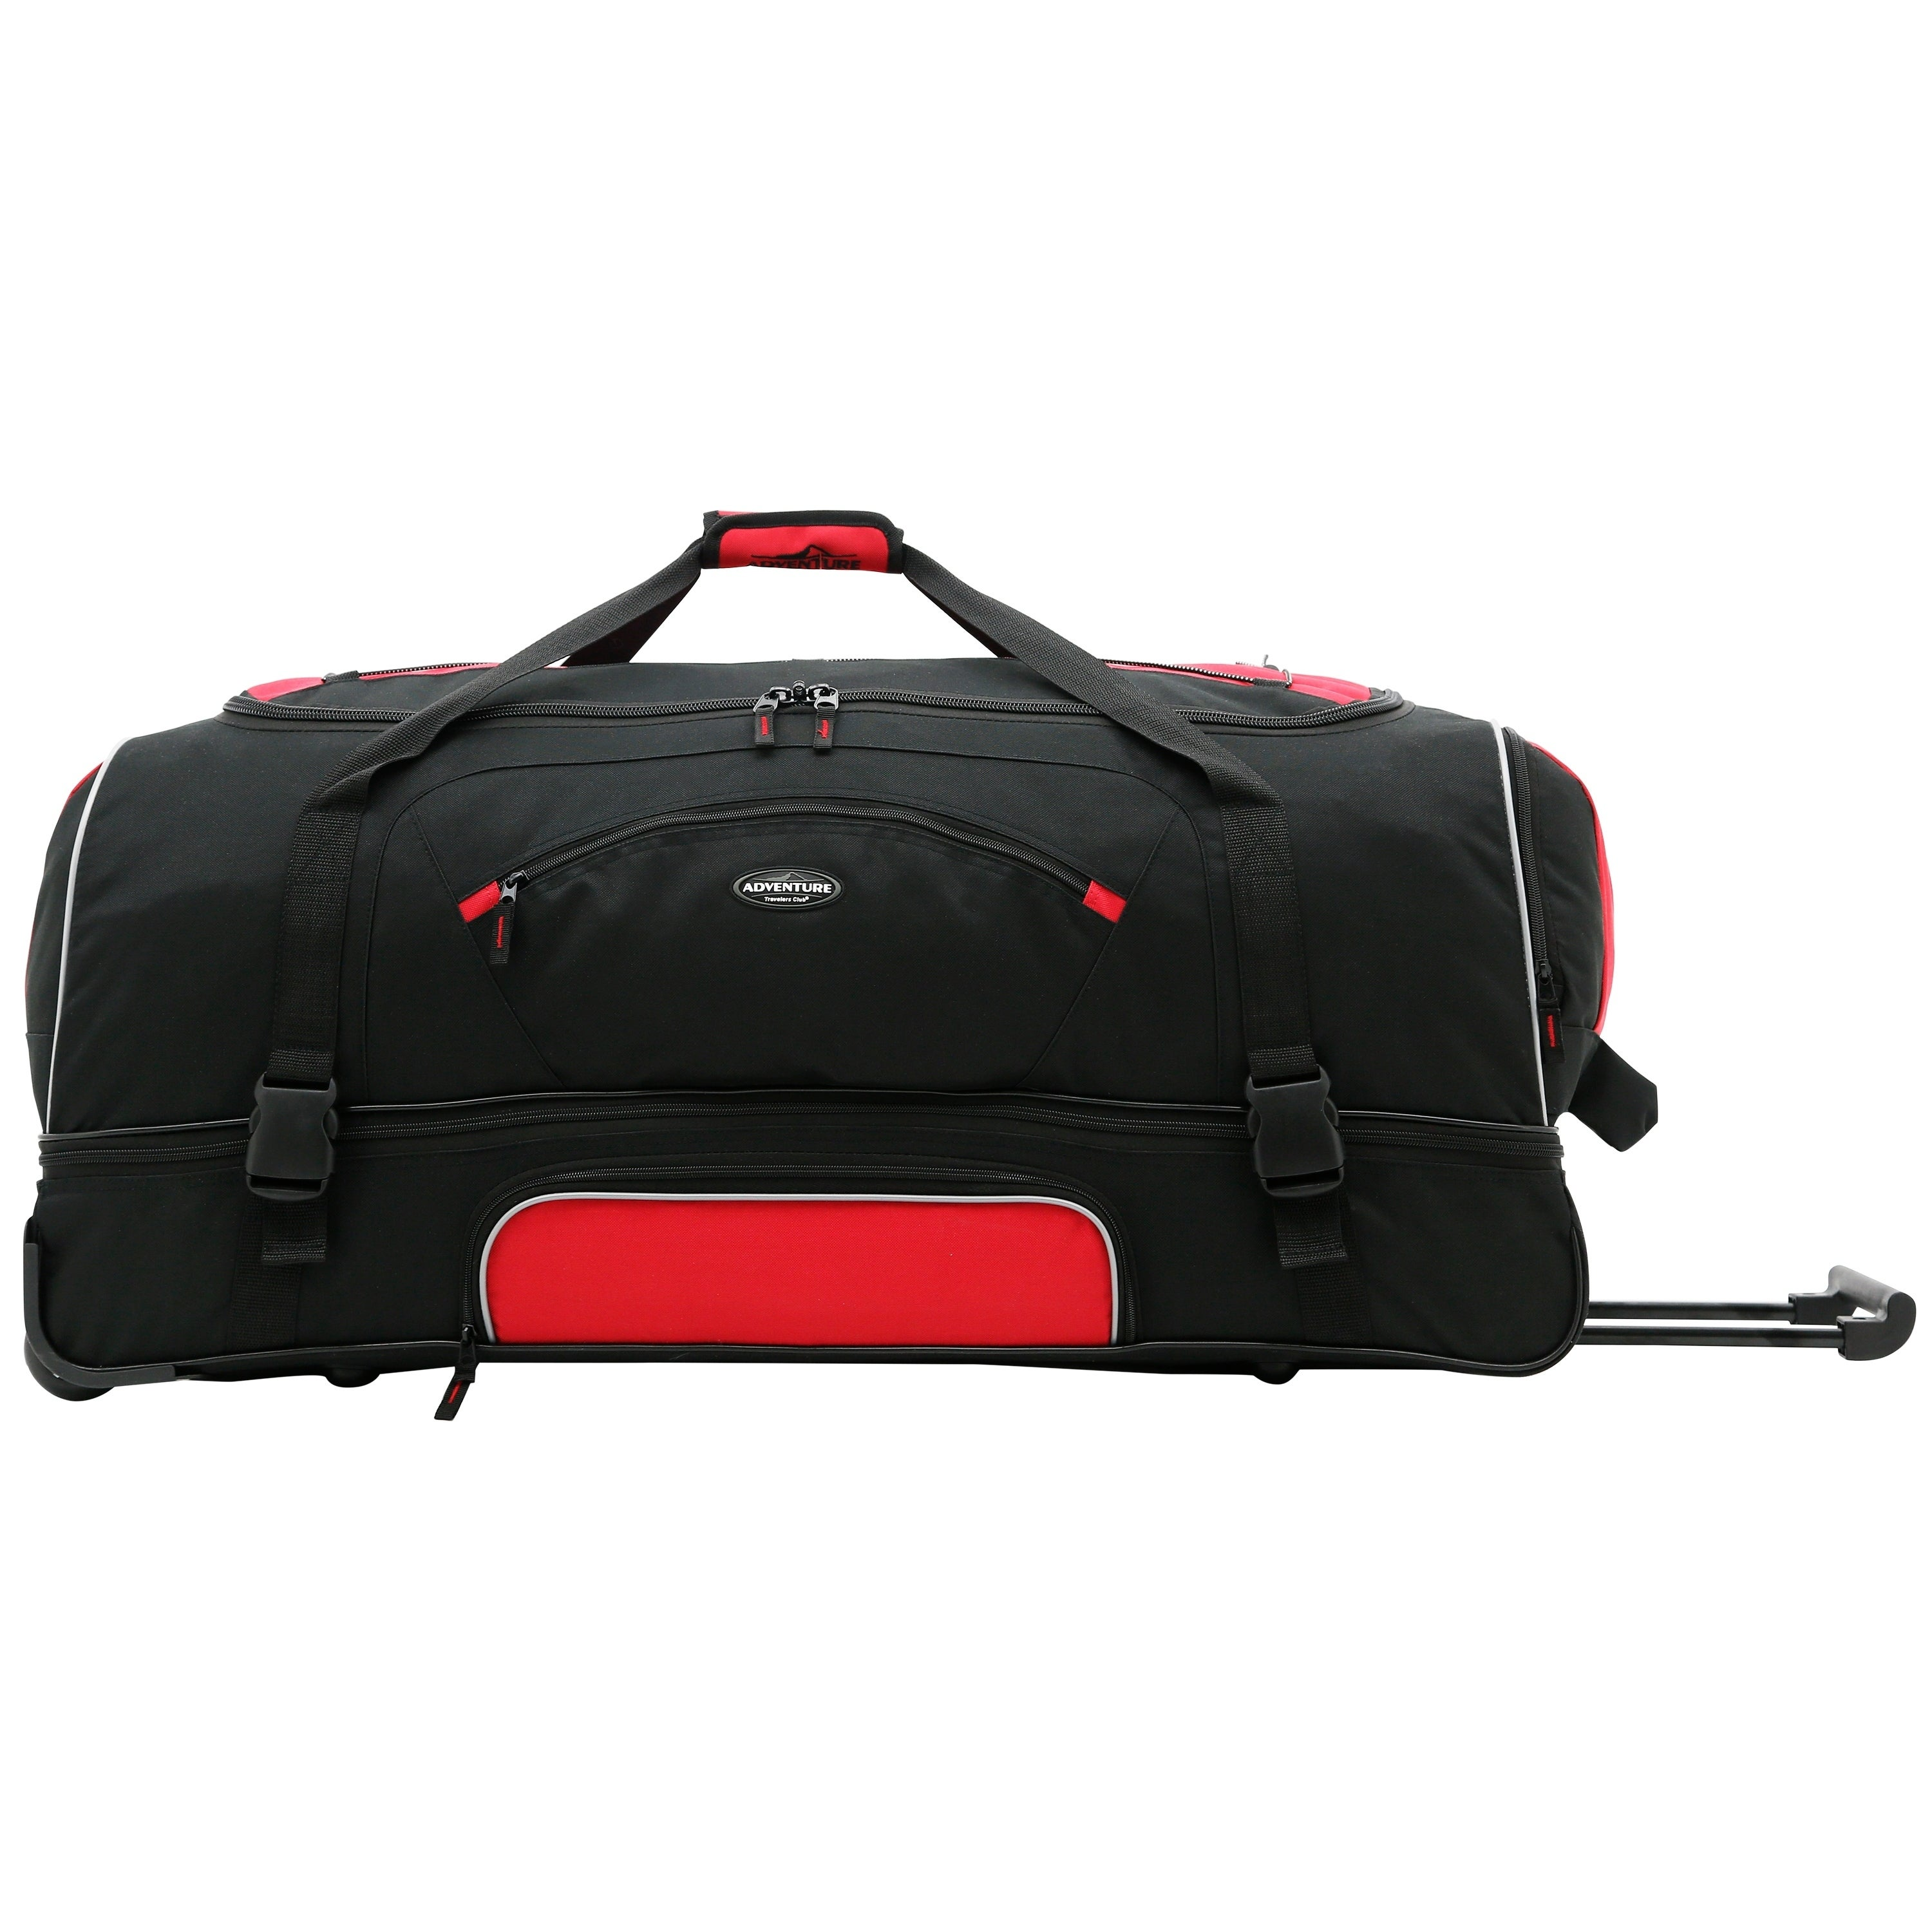 52f1cd9d99ec Traveler's Club Adventurer Duffel Collection 36-inch 2-section Drop Bottom  Rolling Duffel